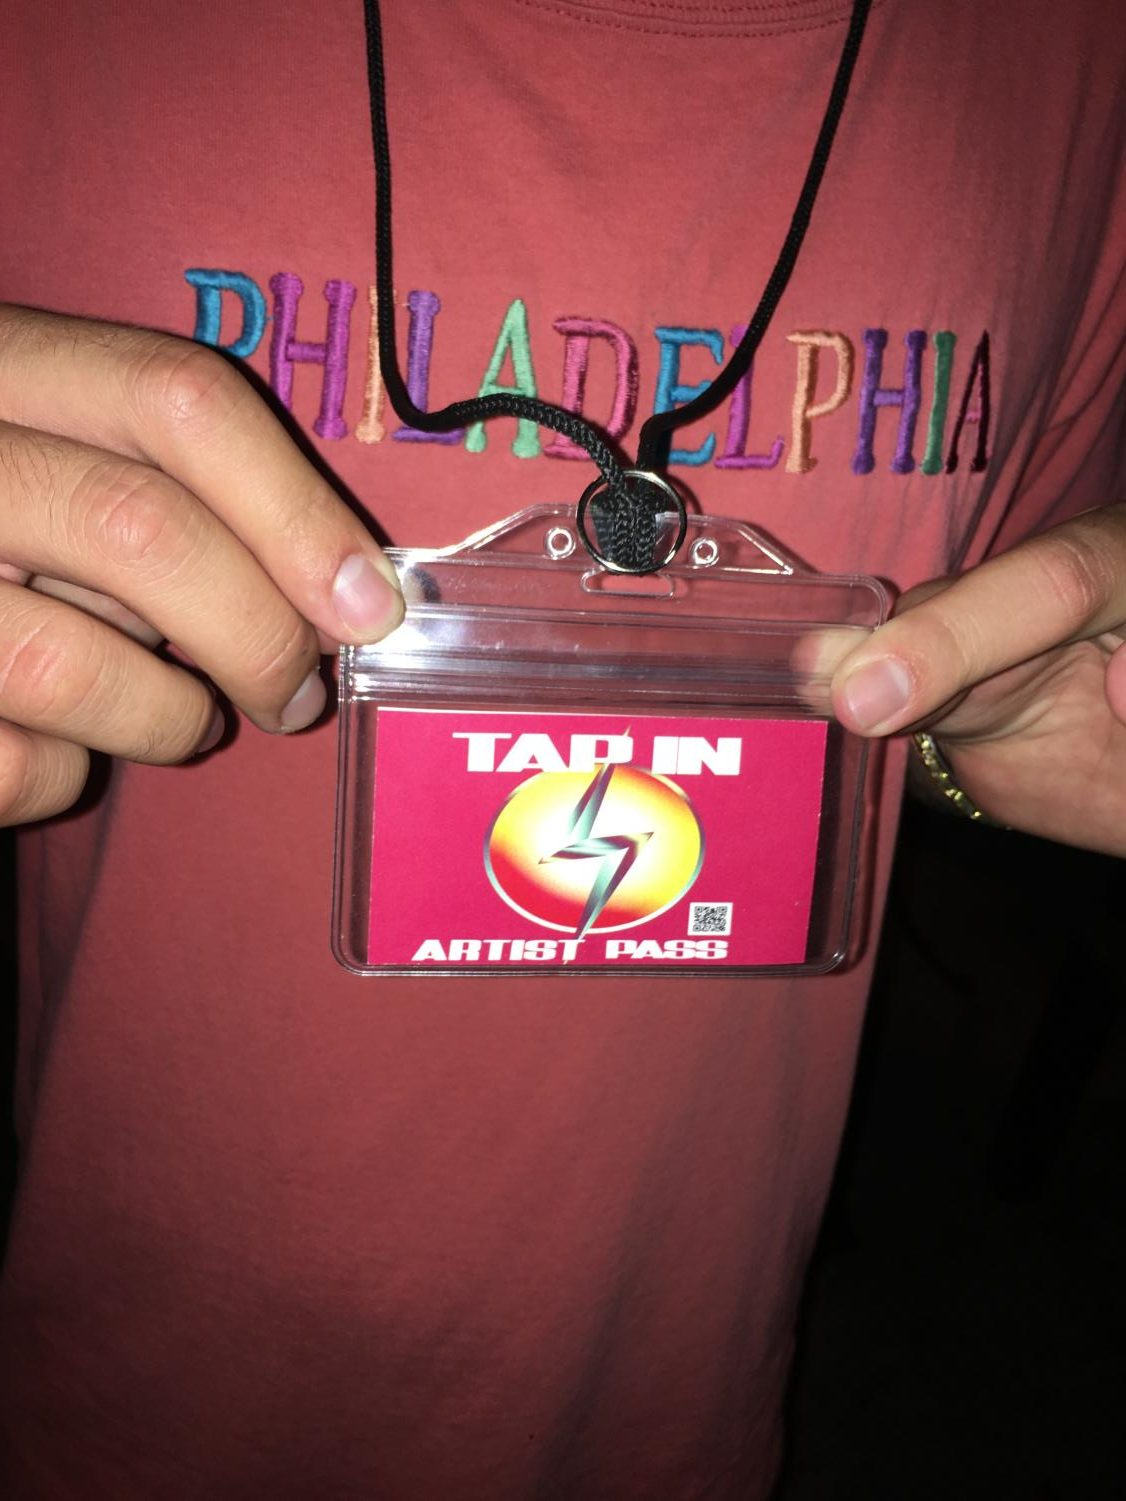 Musicians had special passes they wore all night. NateyZ performed with Quiet Child as a one night back in San Diego after graduation when they moved to Los Angeles.